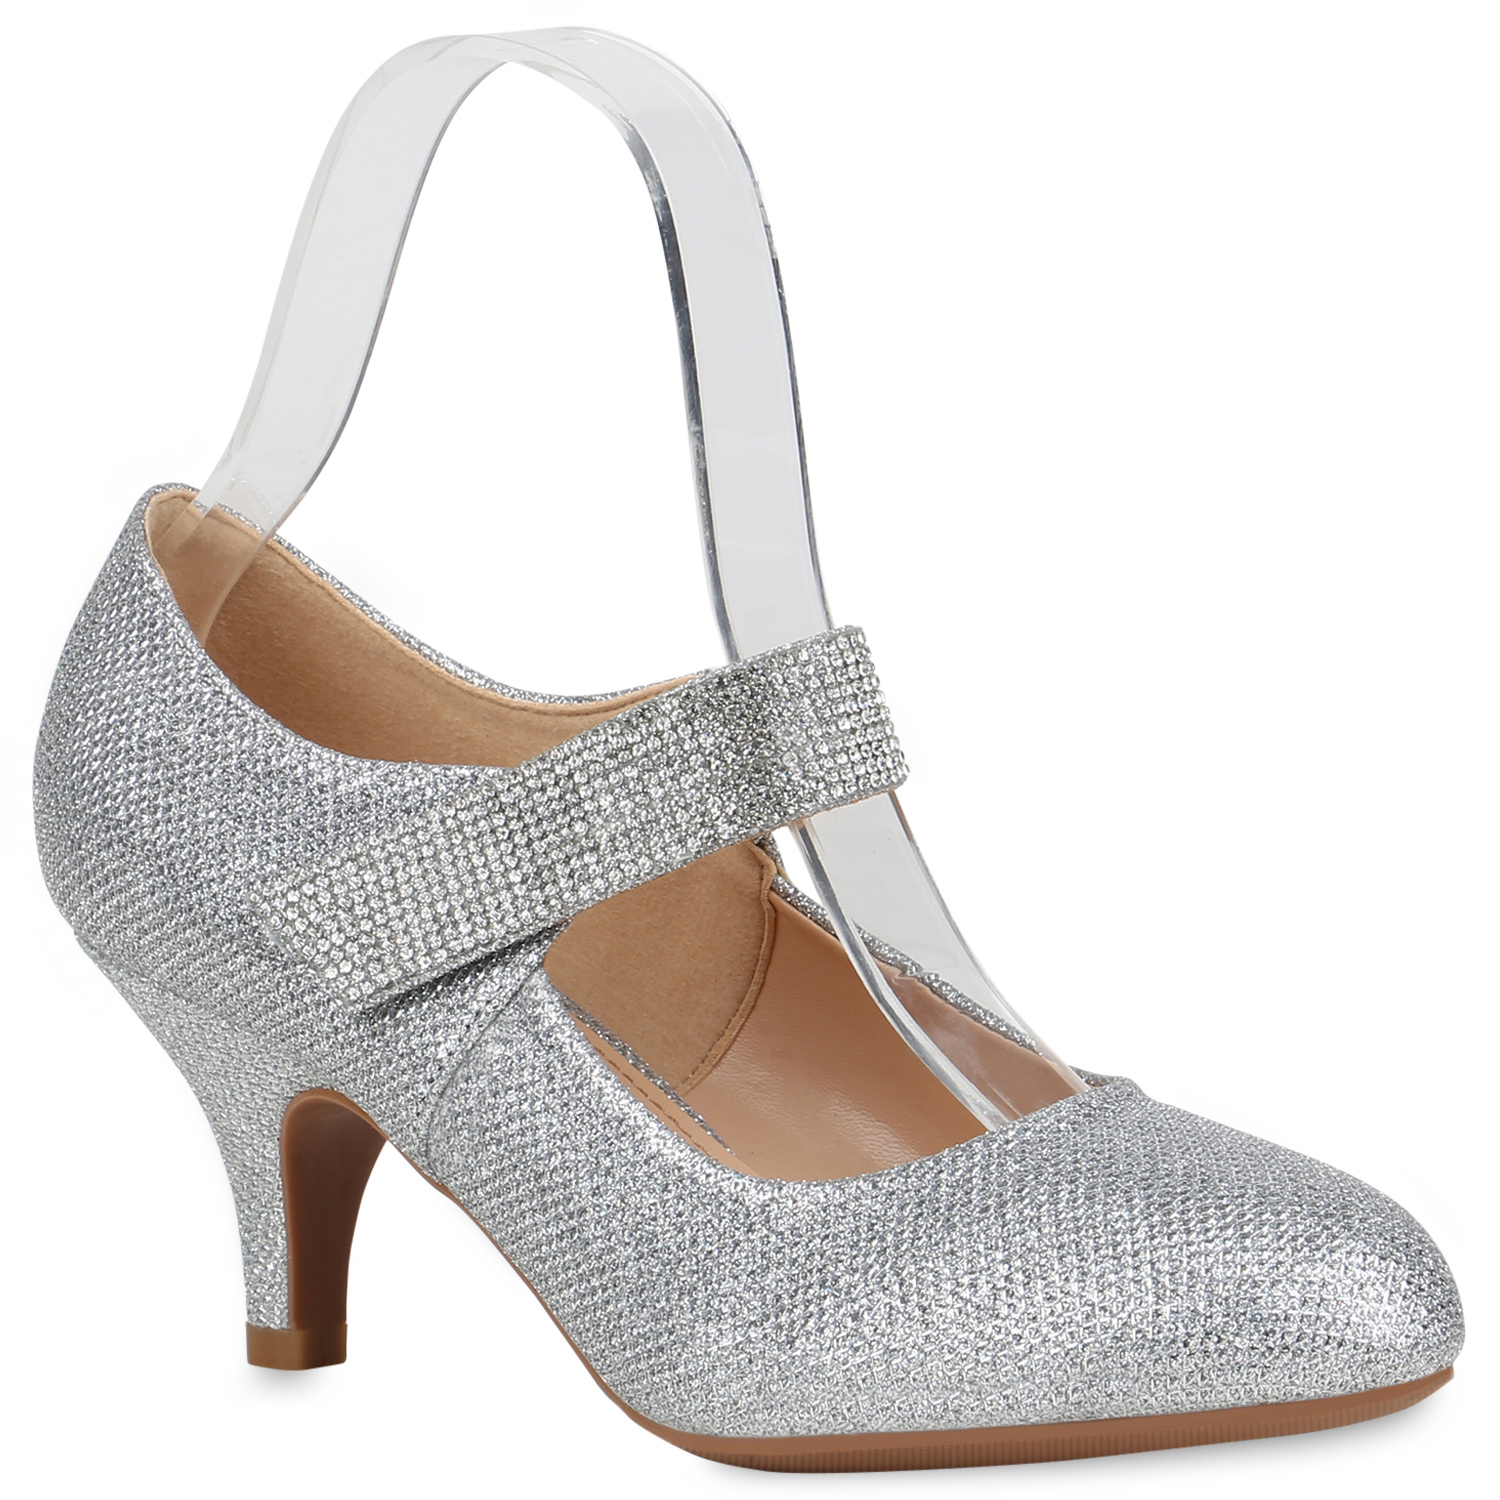 Damen Pumps Mary Janes - Silber